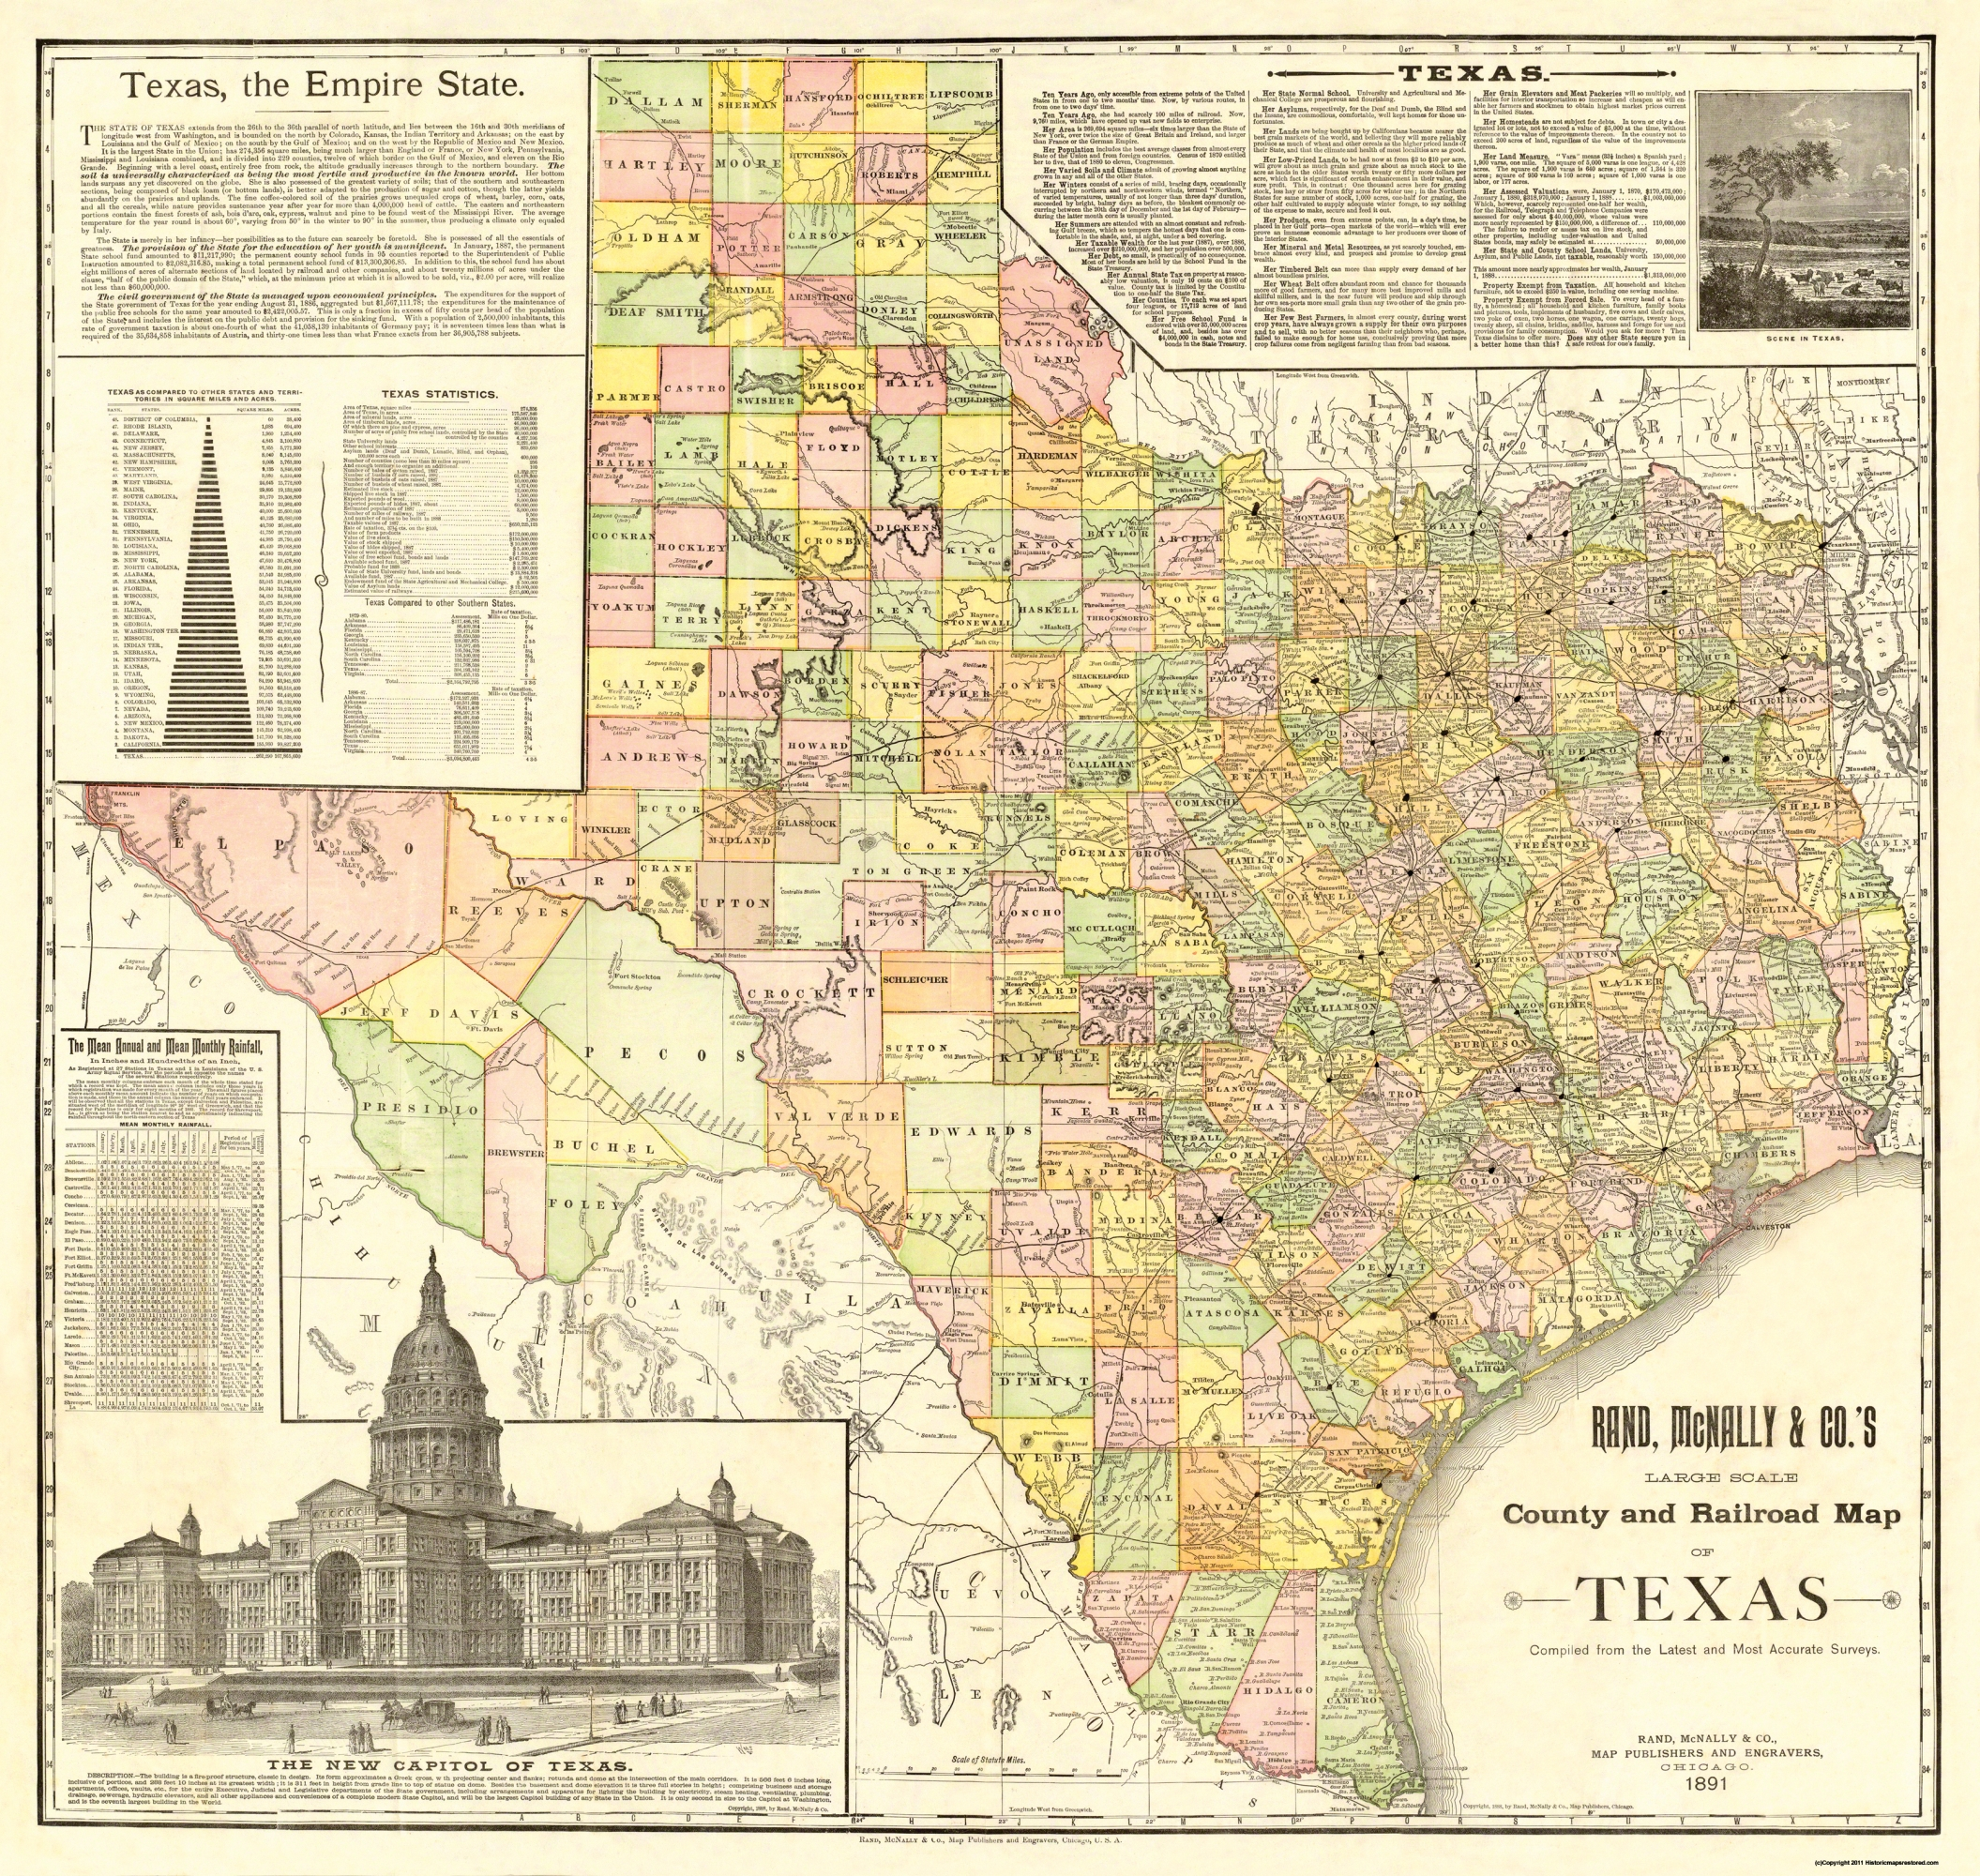 Map Of Texas With Counties.Old Railroad Map Texas Counties And Railroads 1891